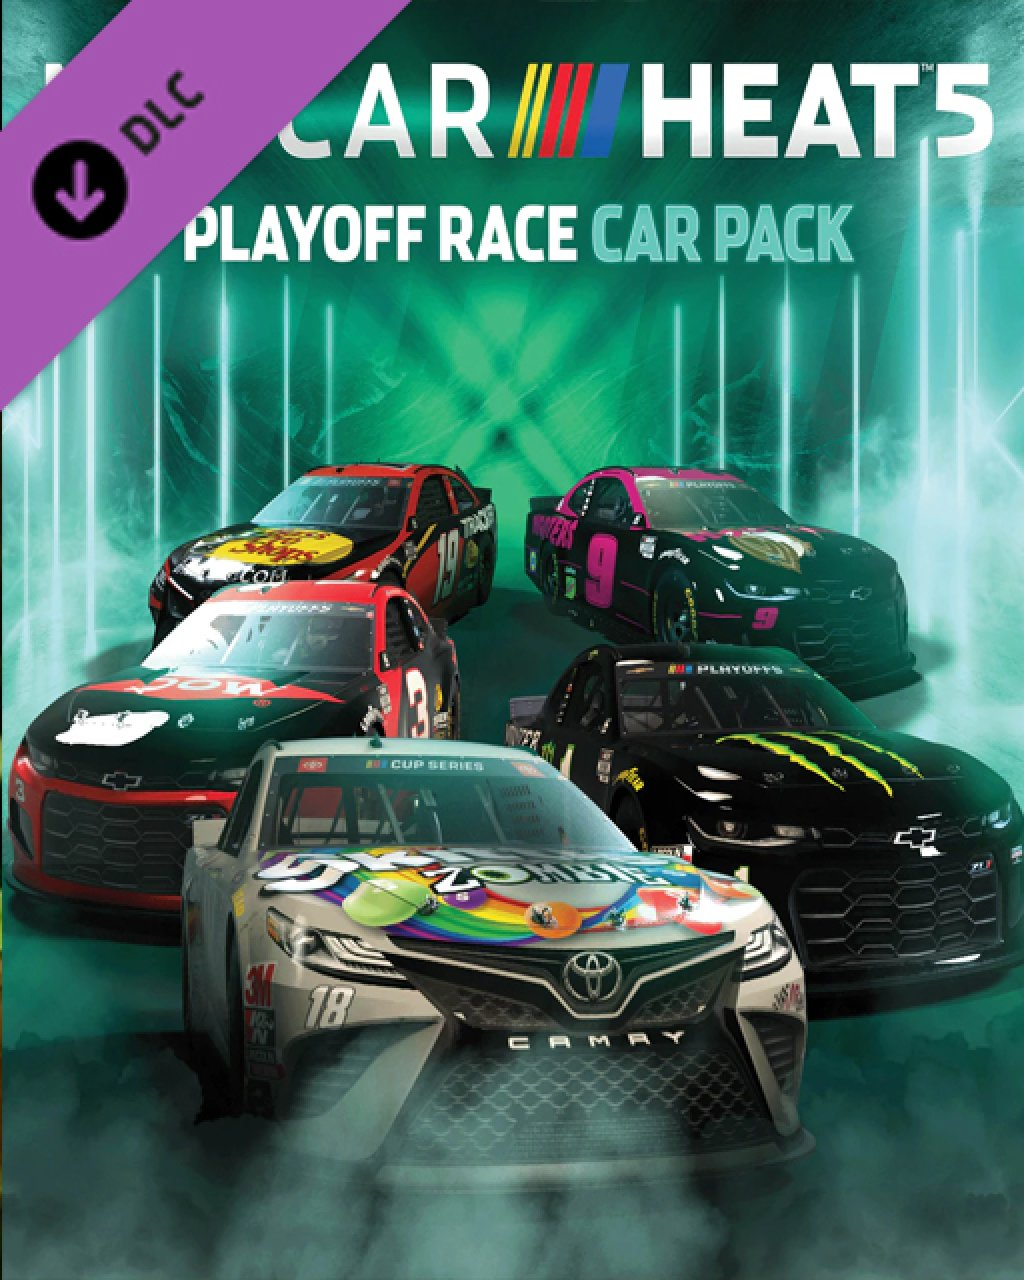 Nascar Heat 5 Playoff Pack